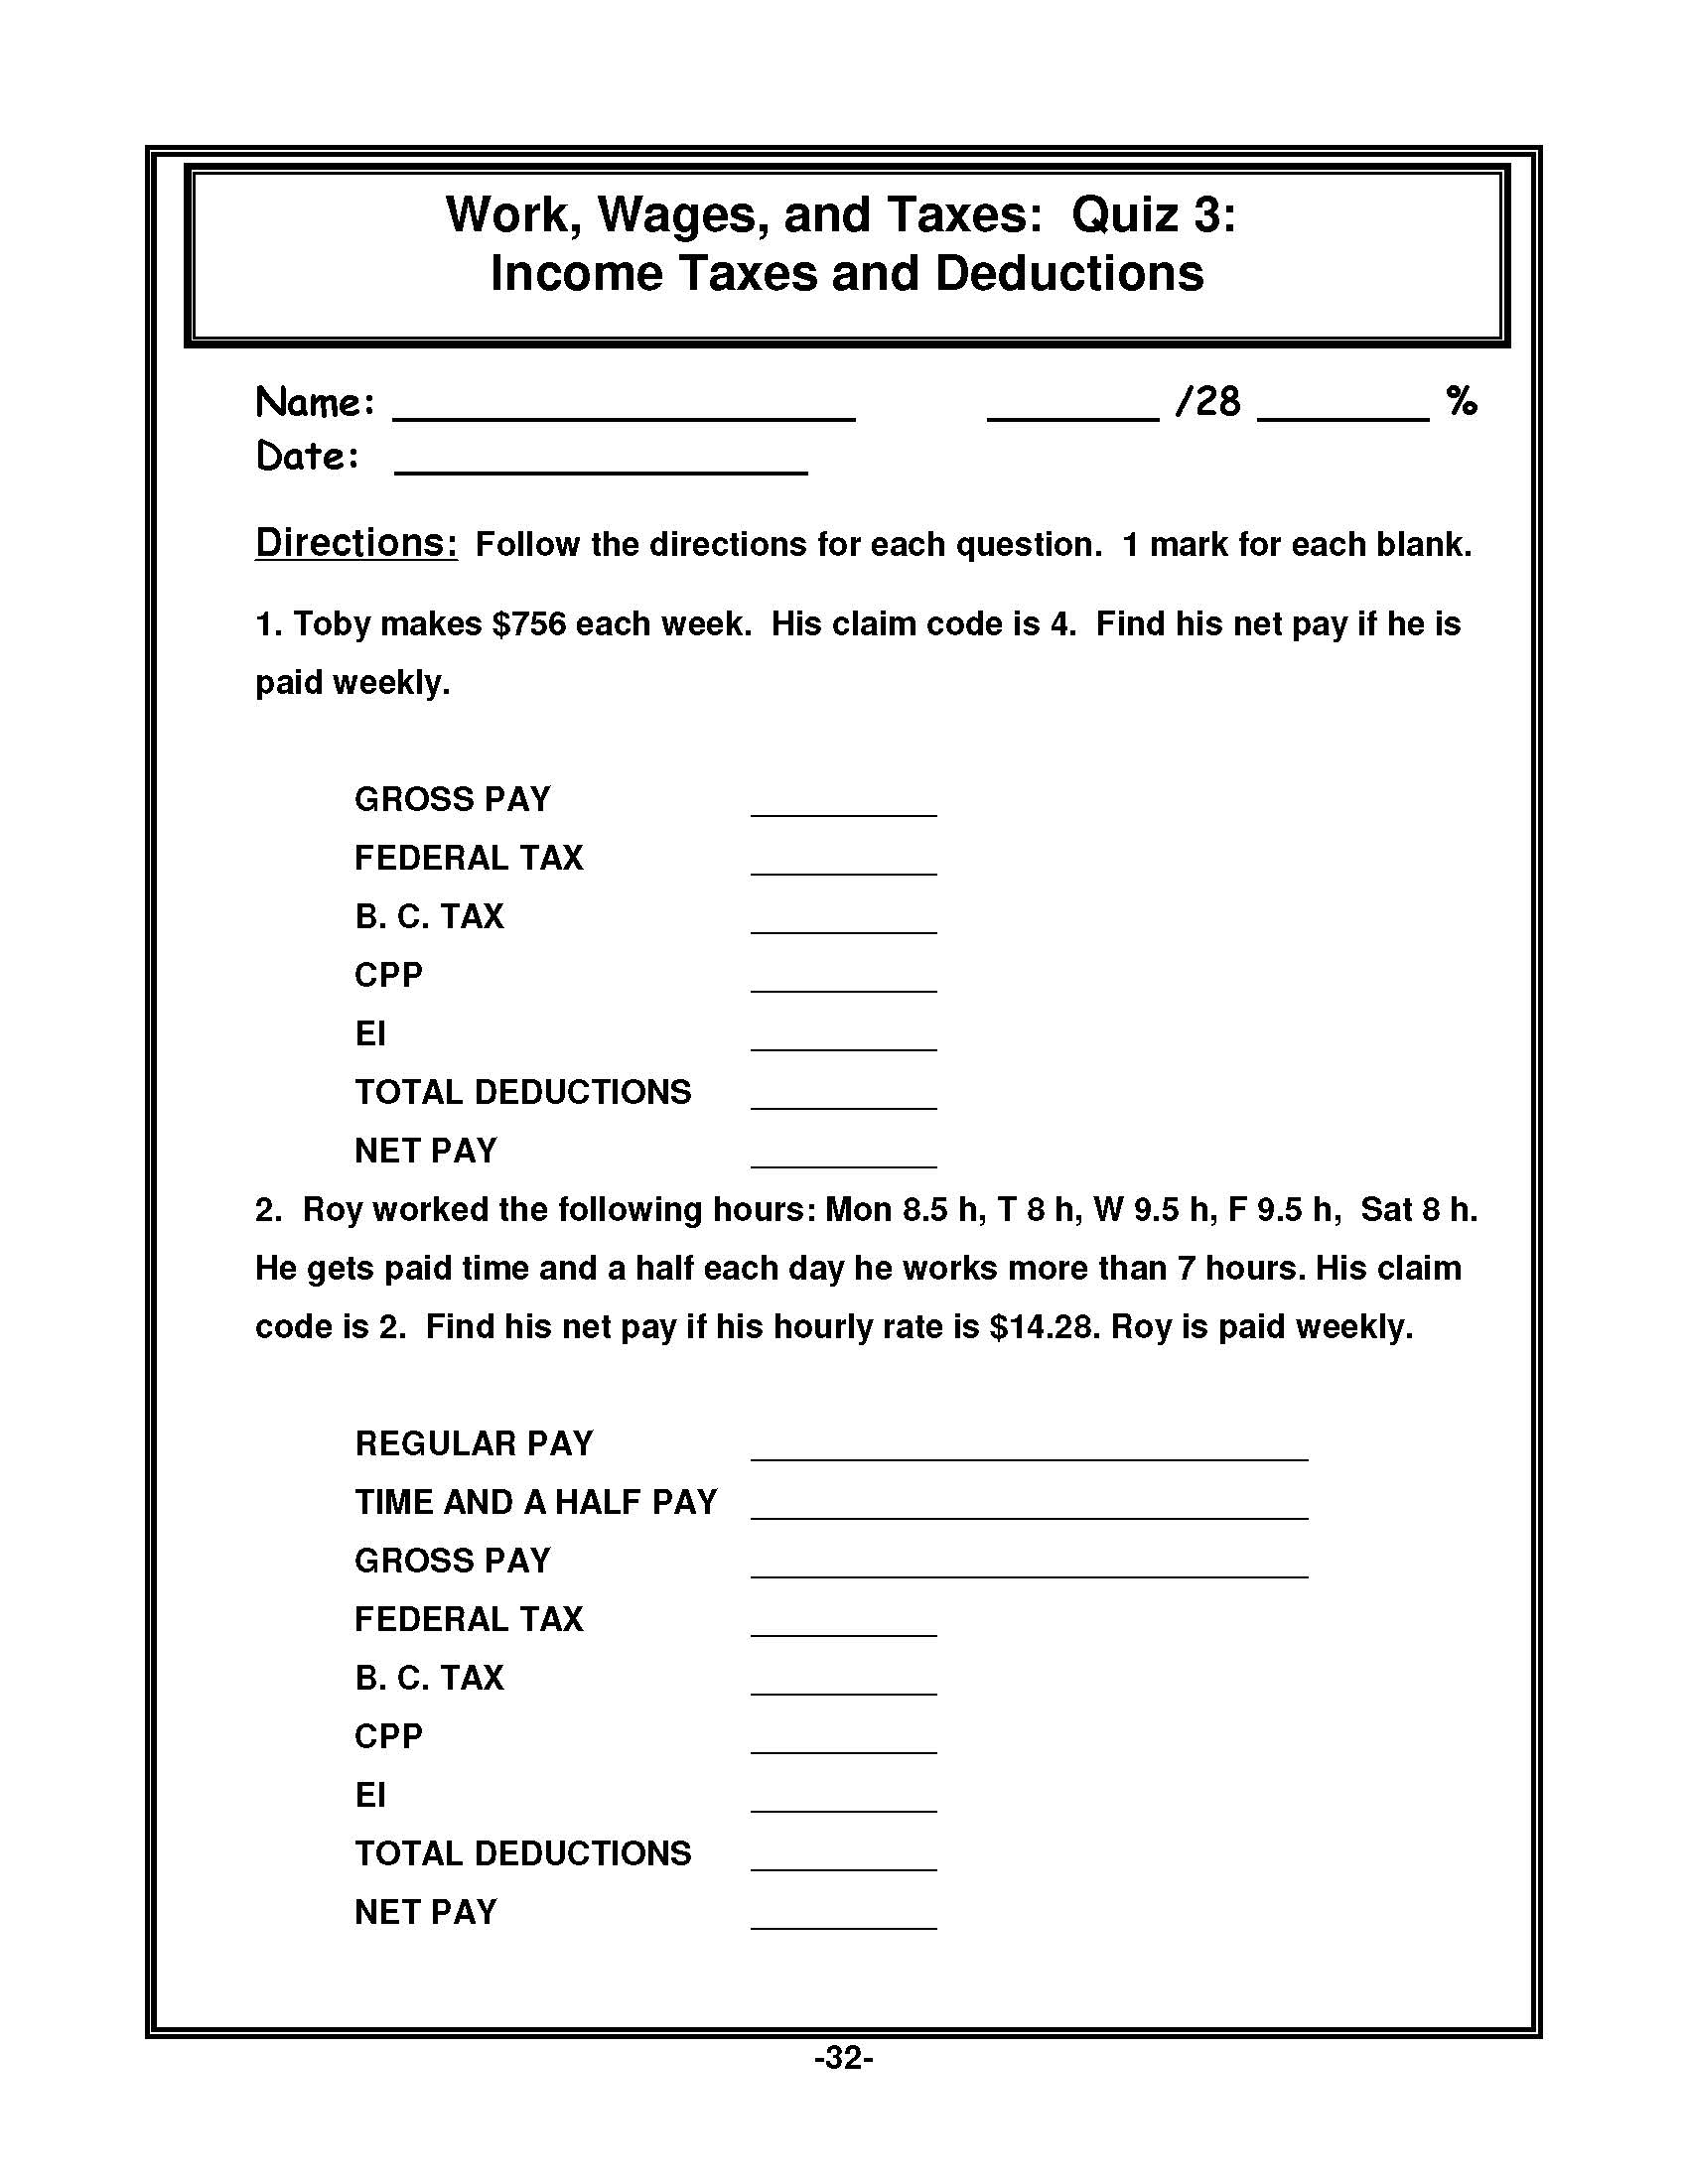 Math Essentials Book 7 Work Wages And Taxes